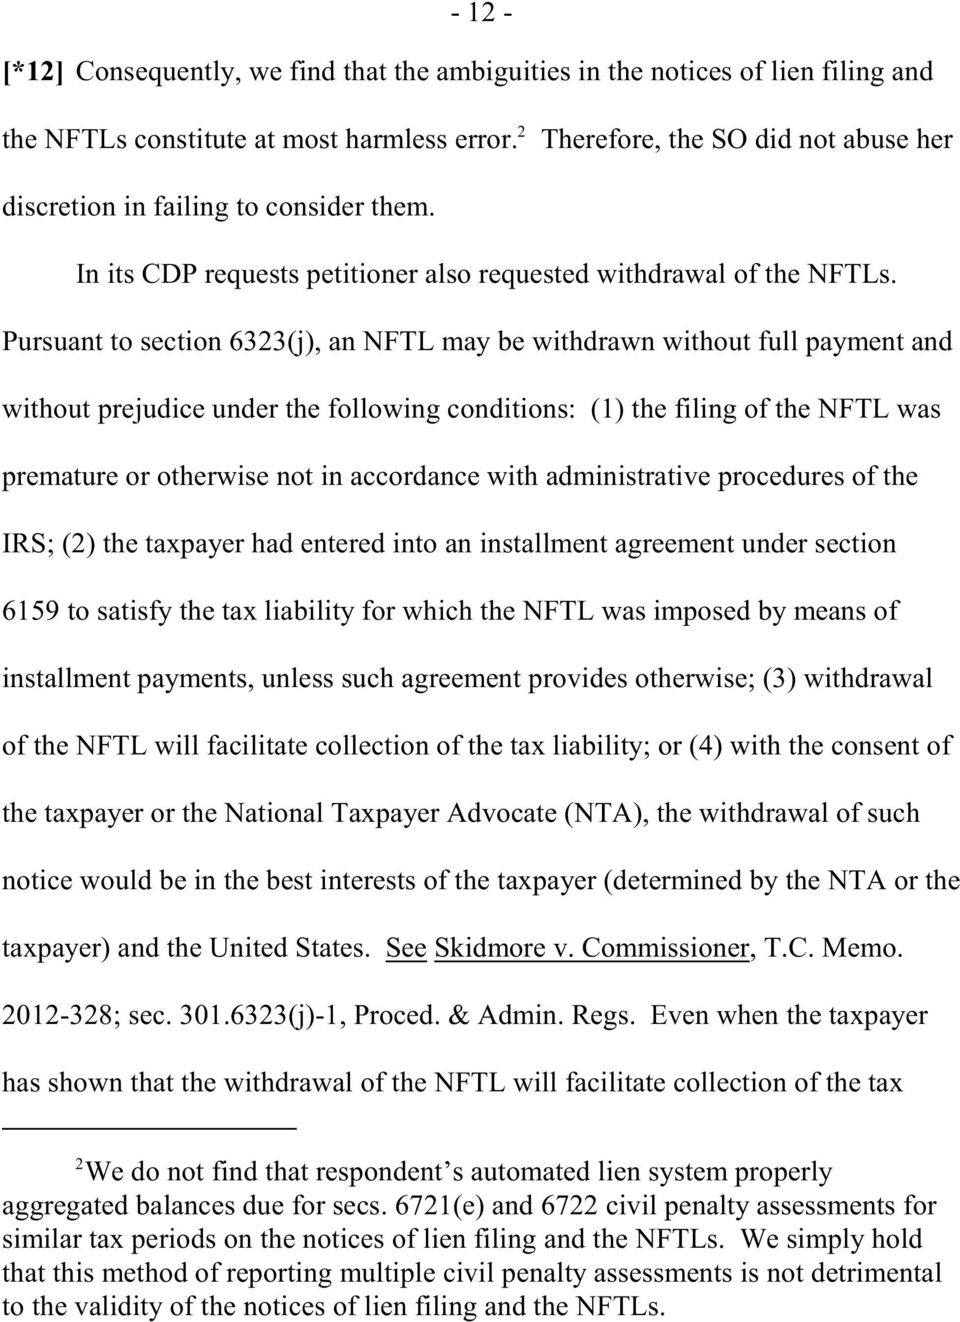 Pursuant to section 6323(j), an NFTL may be withdrawn without full payment and without prejudice under the following conditions: (1) the filing of the NFTL was premature or otherwise not in